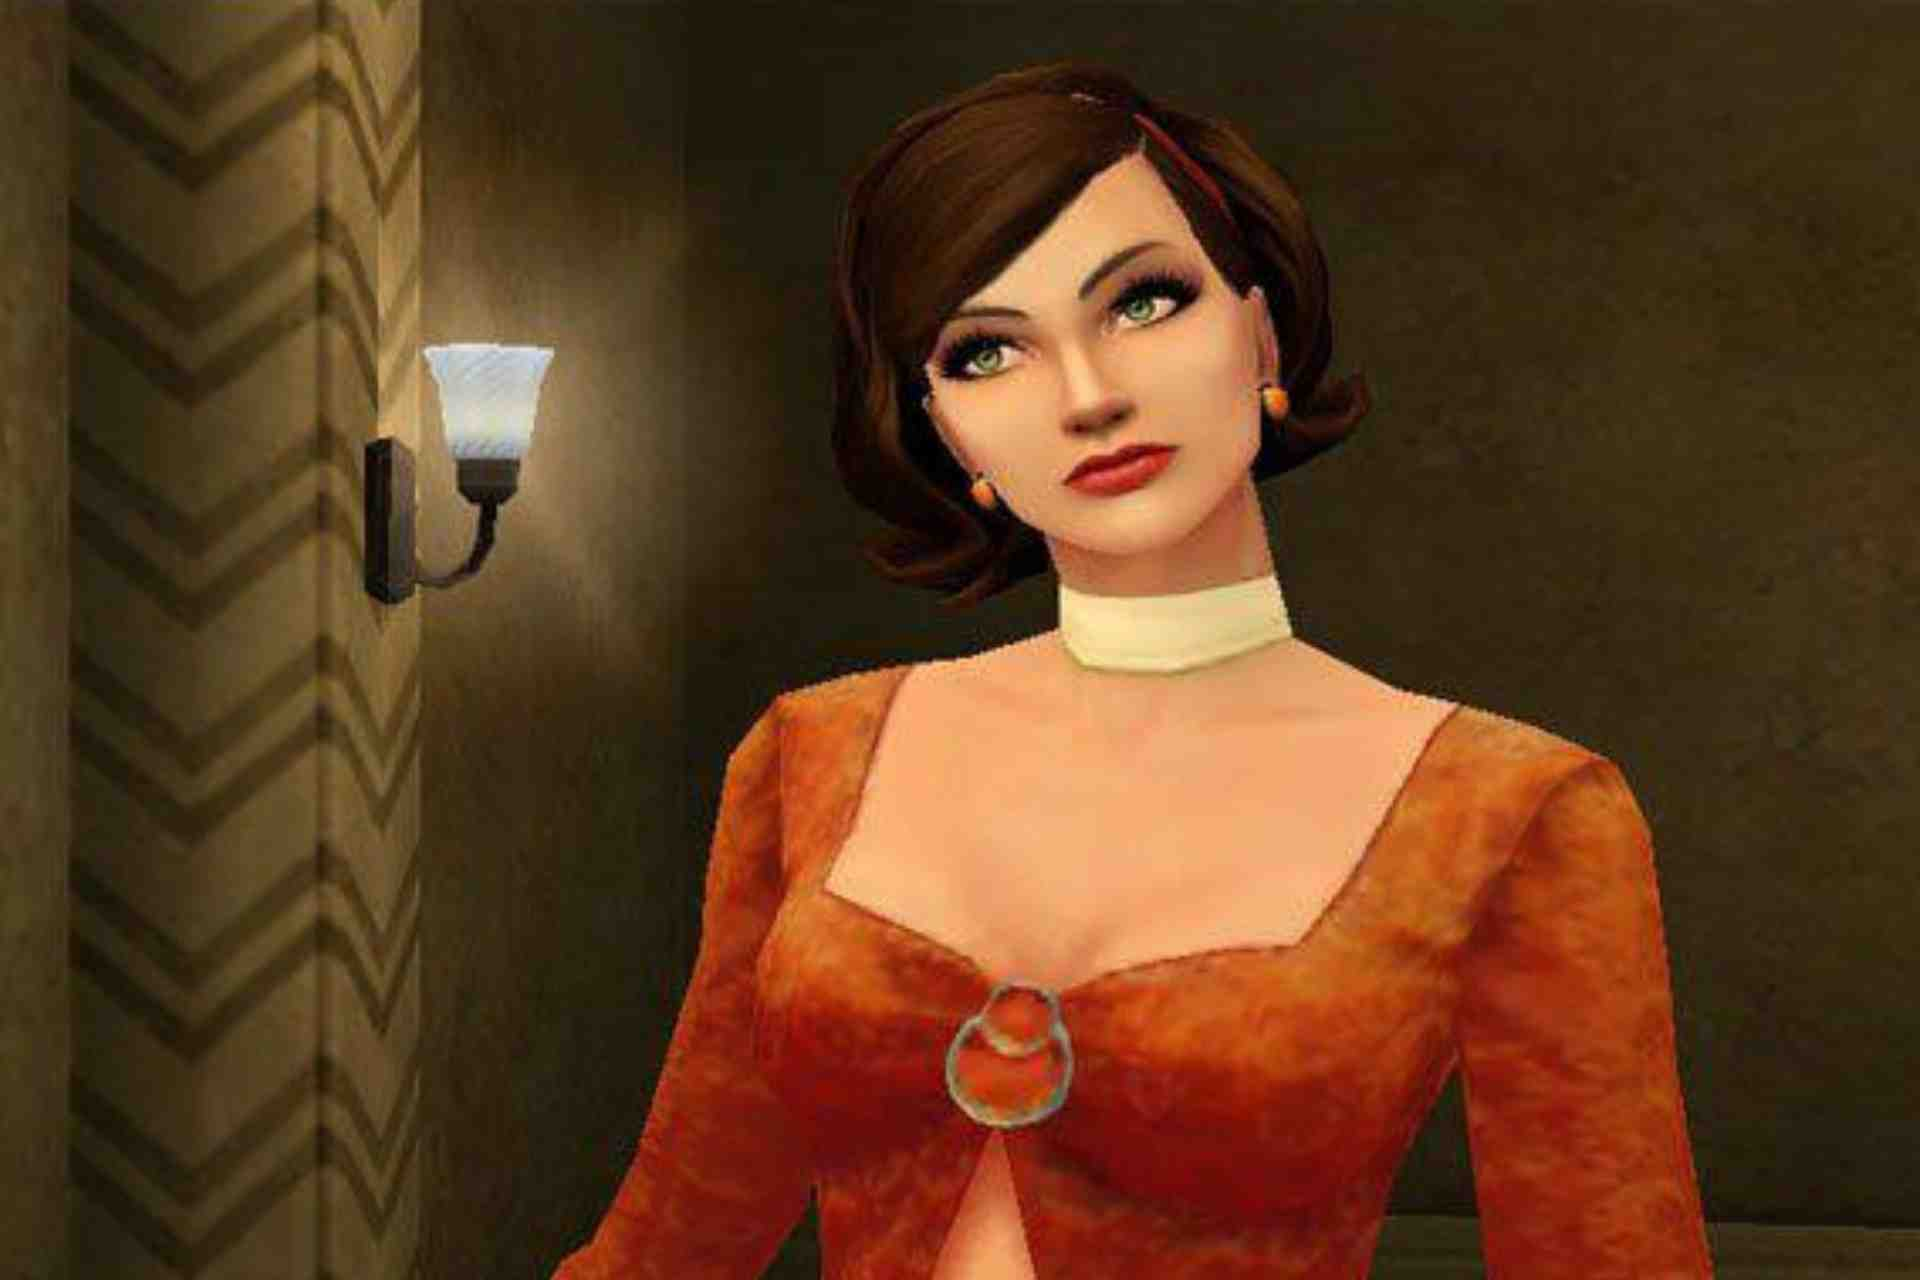 Agent Cate Archer is the main character in No One Lives Forever